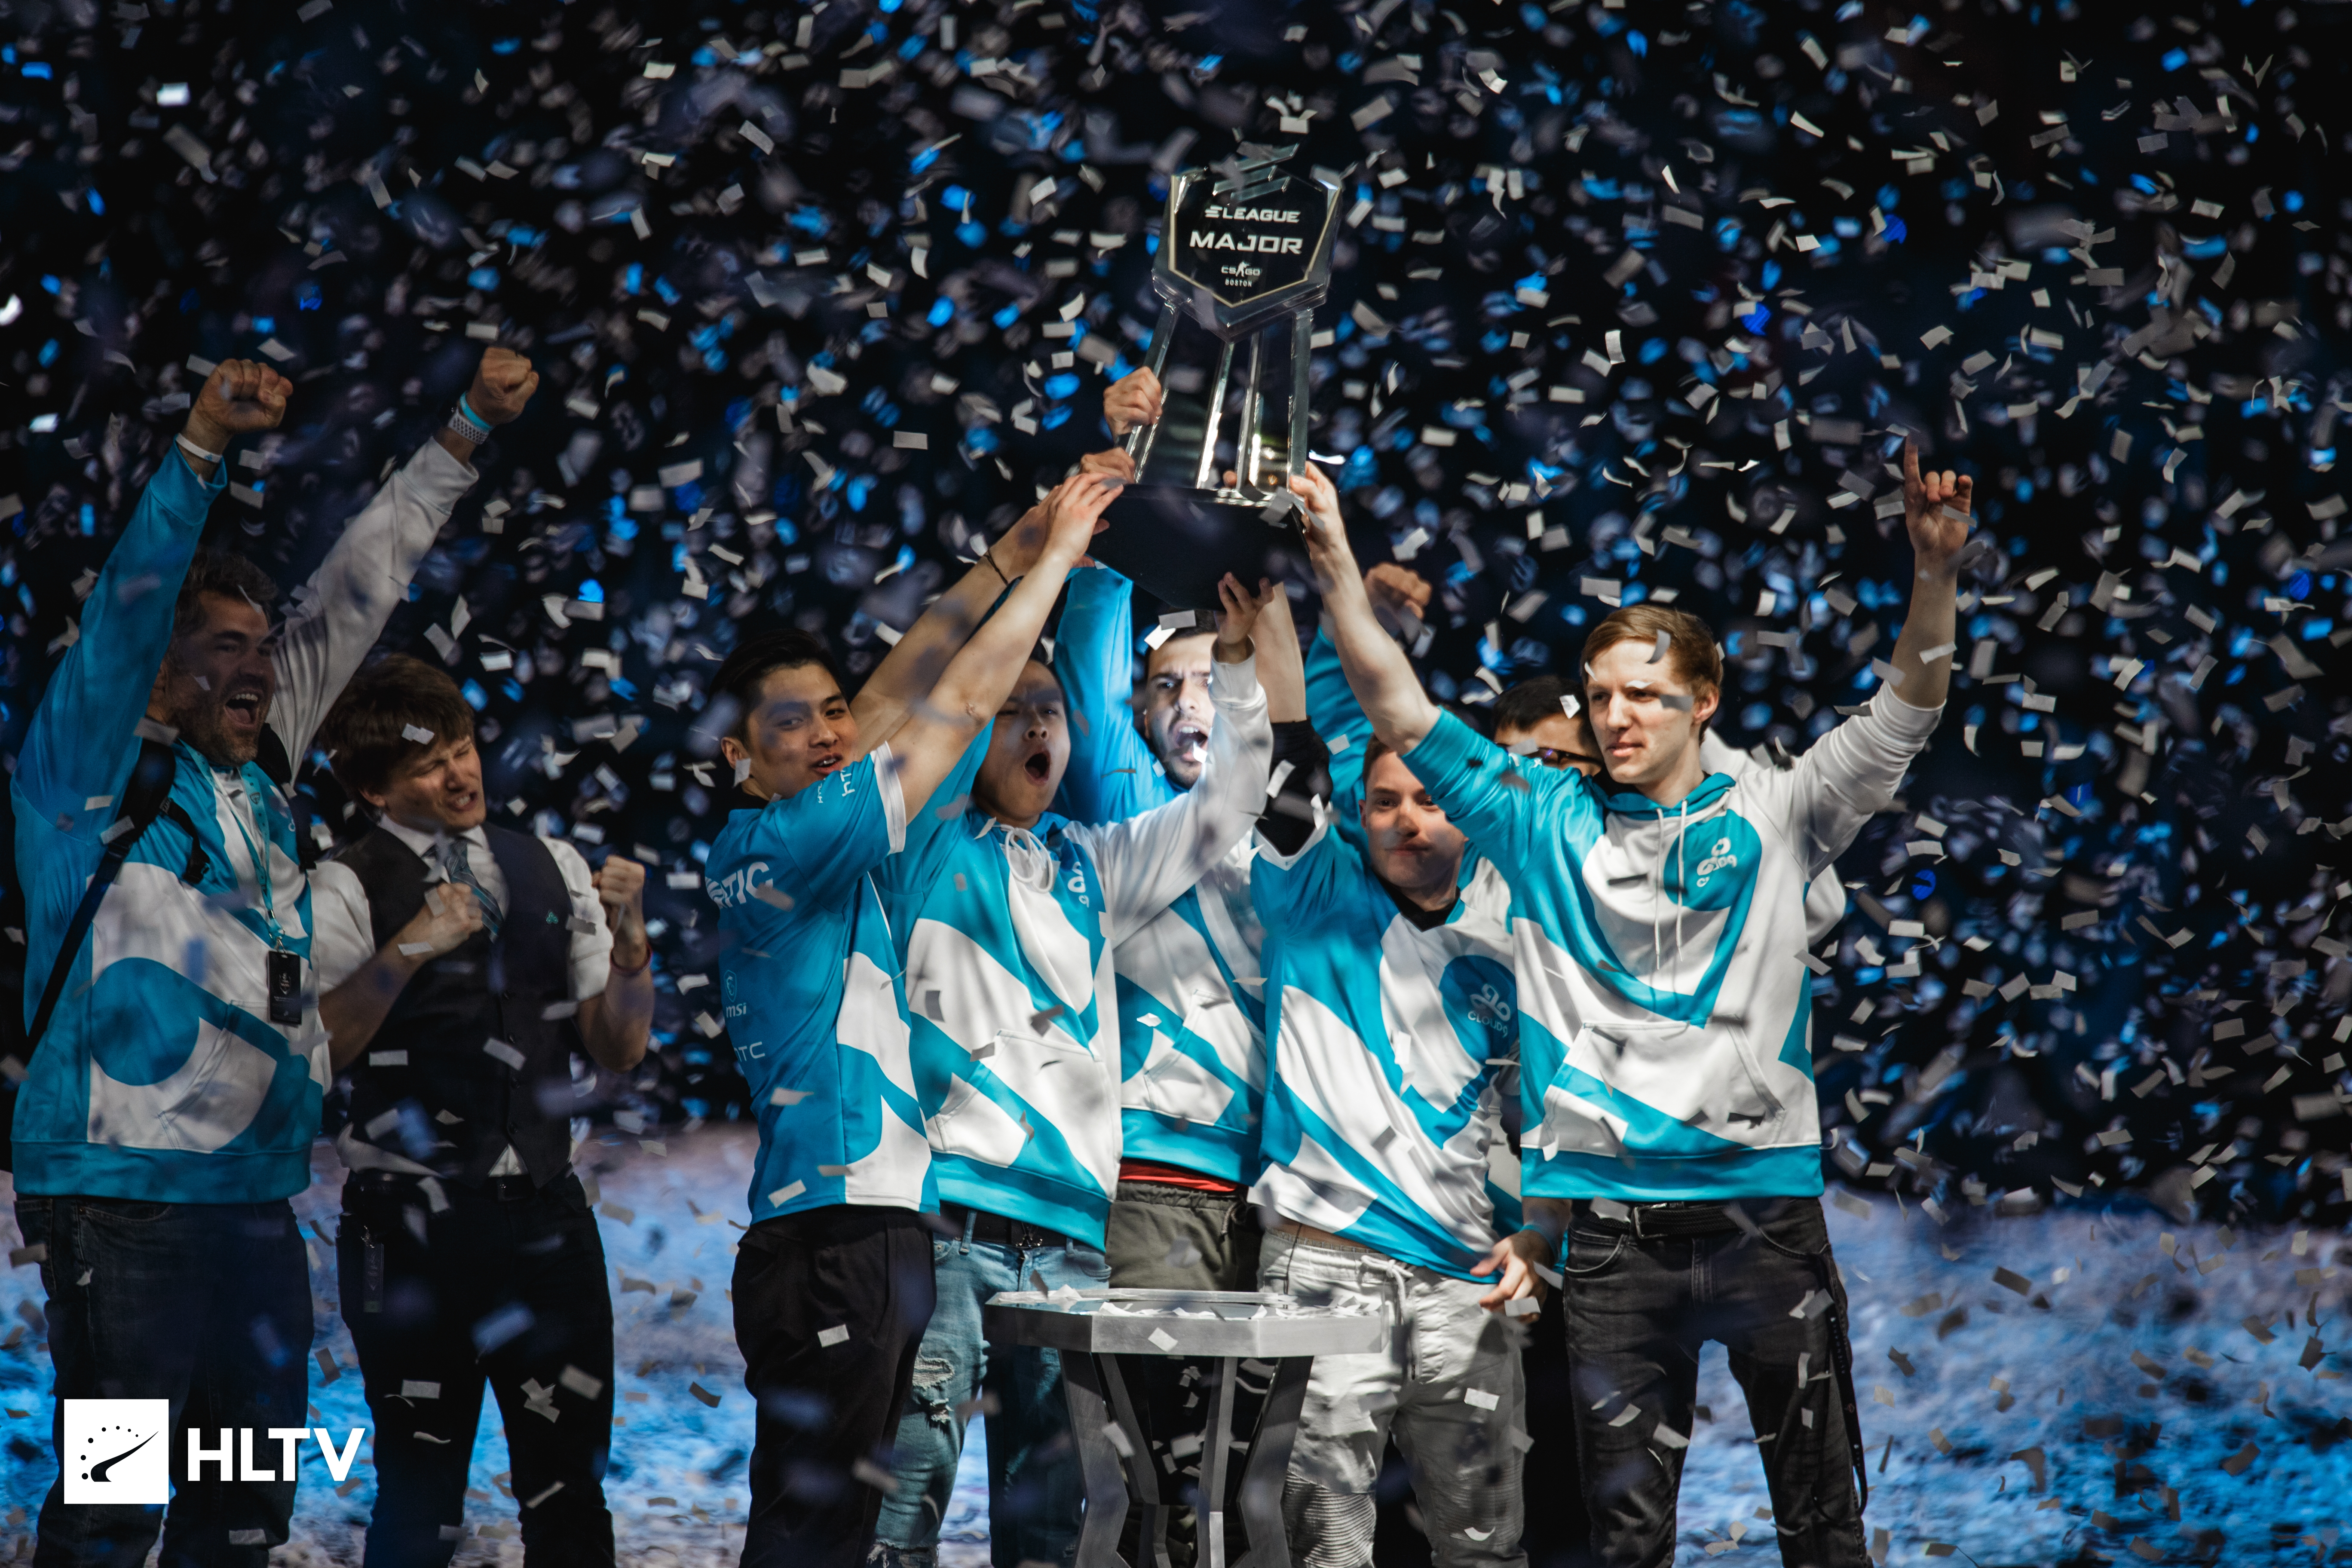 Cloud9 beat FaZe to win ELEAGUE Major Boston | HLTV org